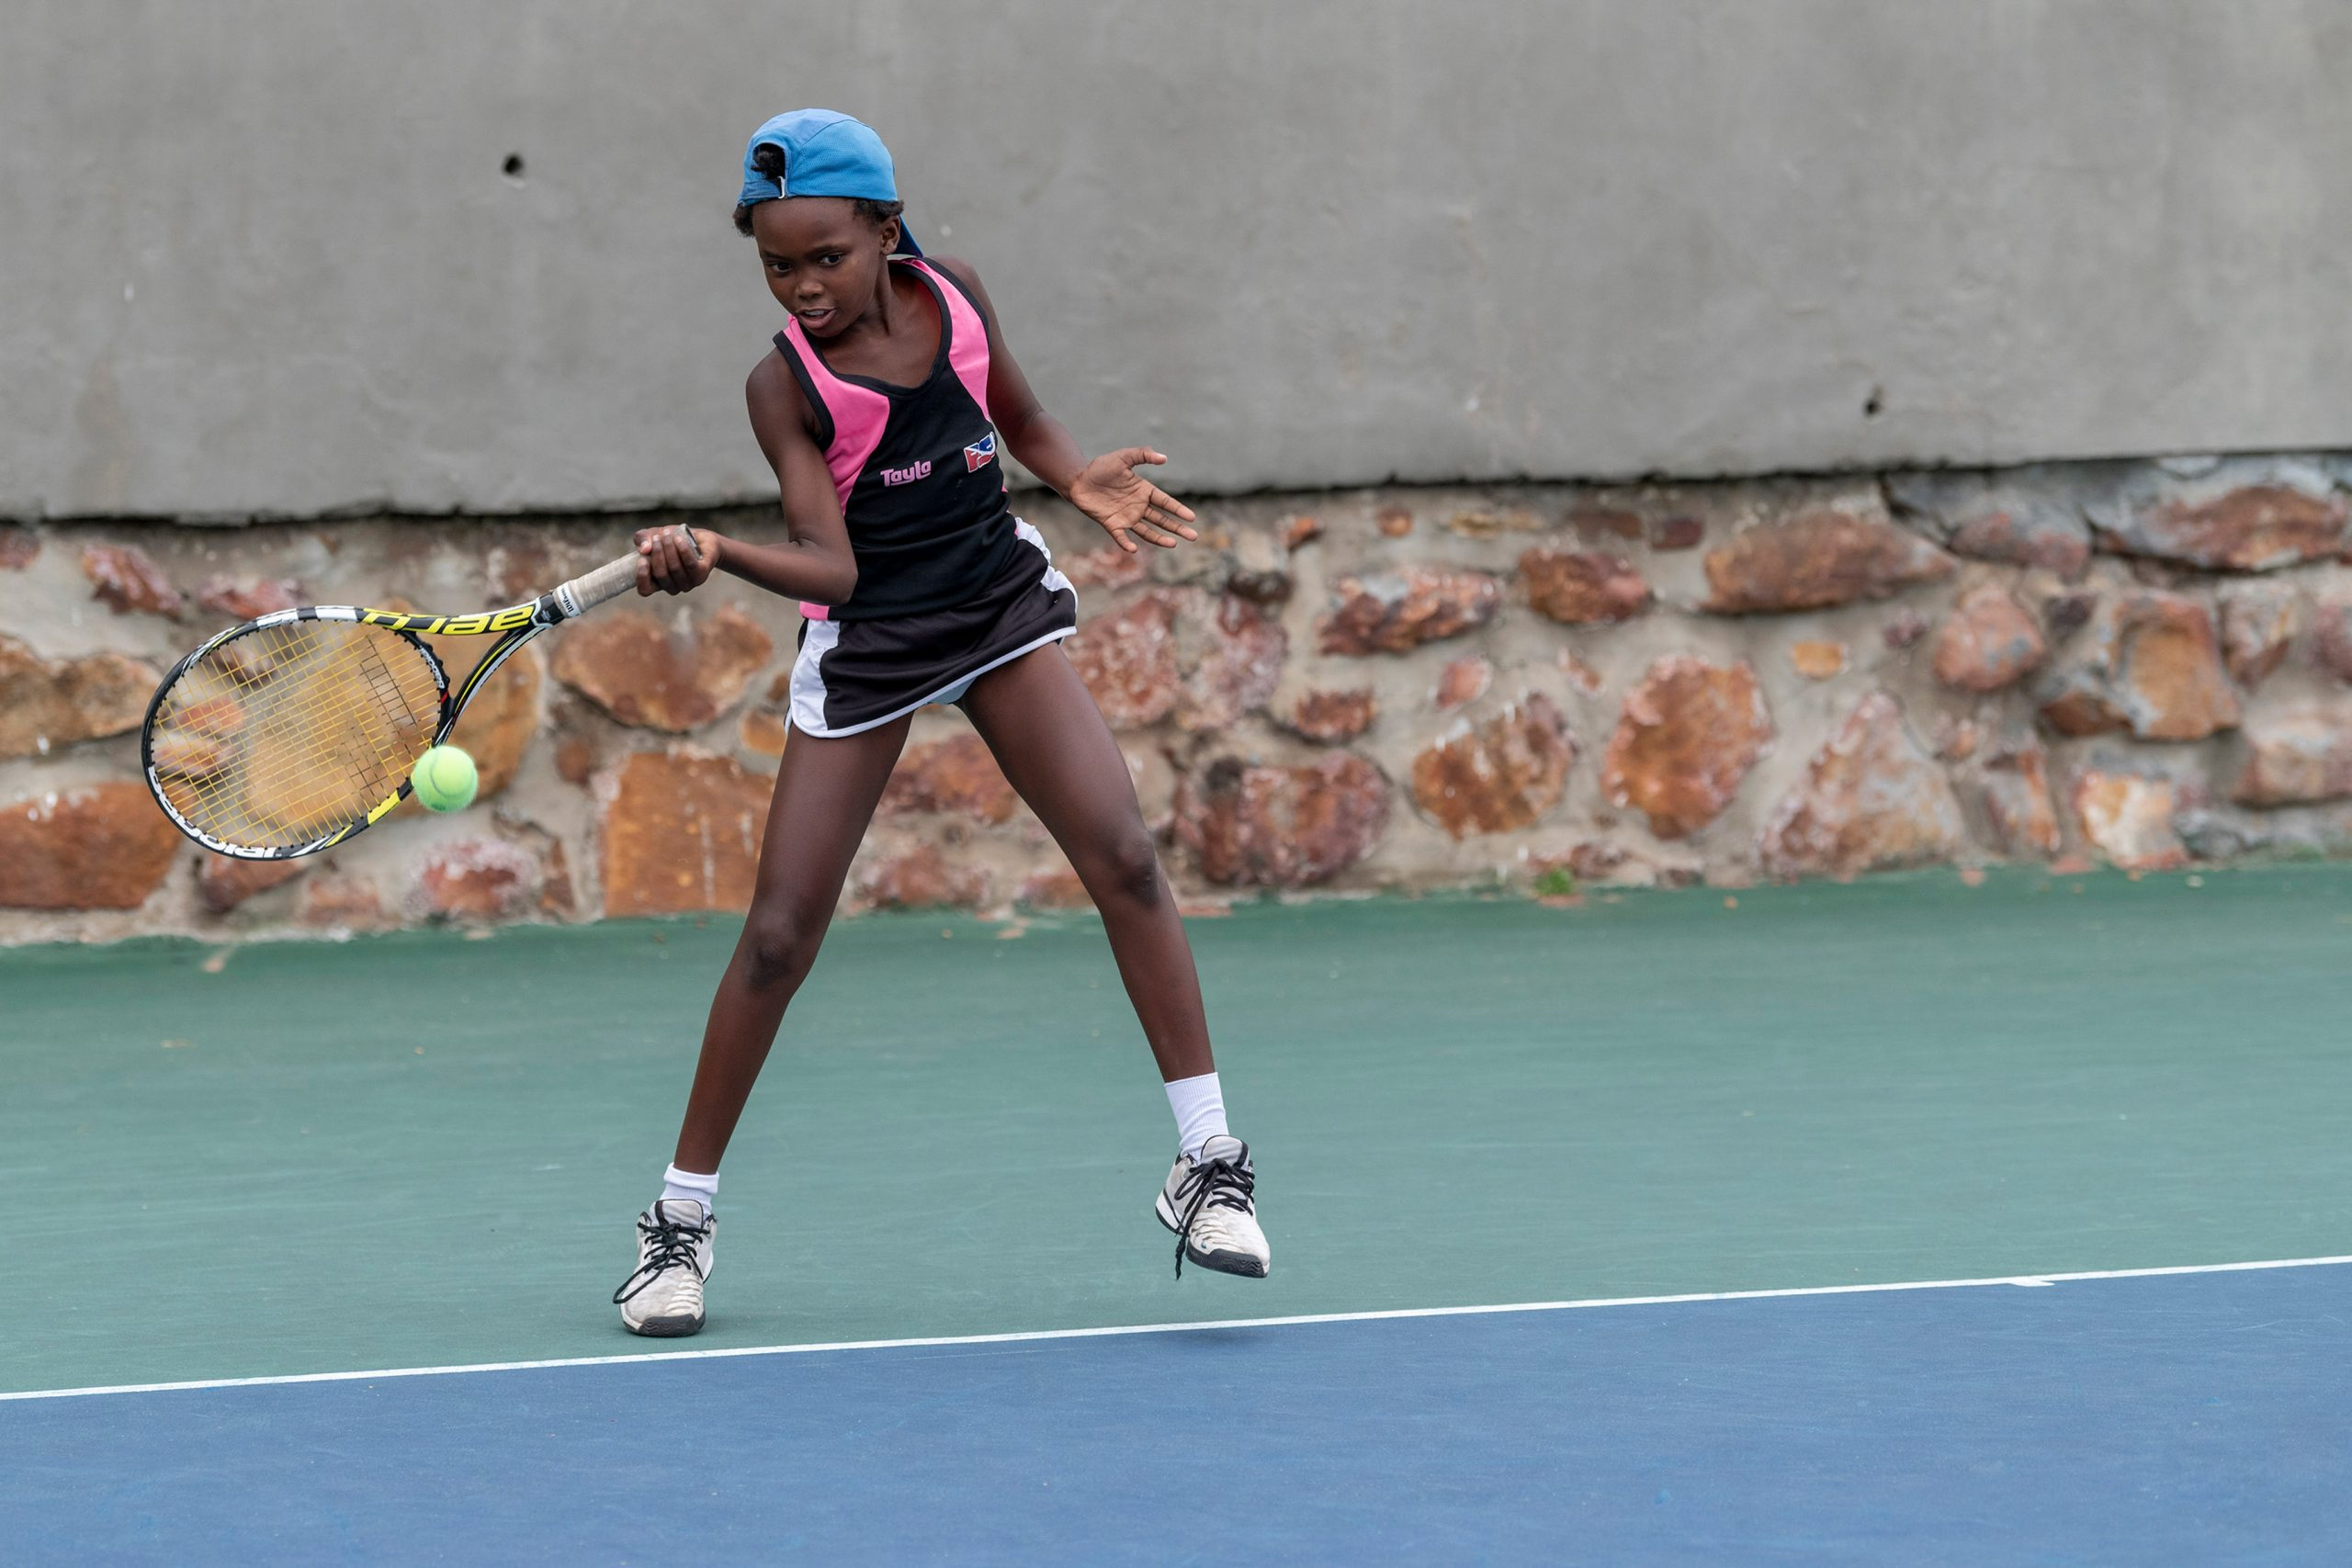 7 February 2020: Nine-year-old Siyolise Schultz is the academy's youngest girl player. (Photograph by Ihsaan Haffejee)